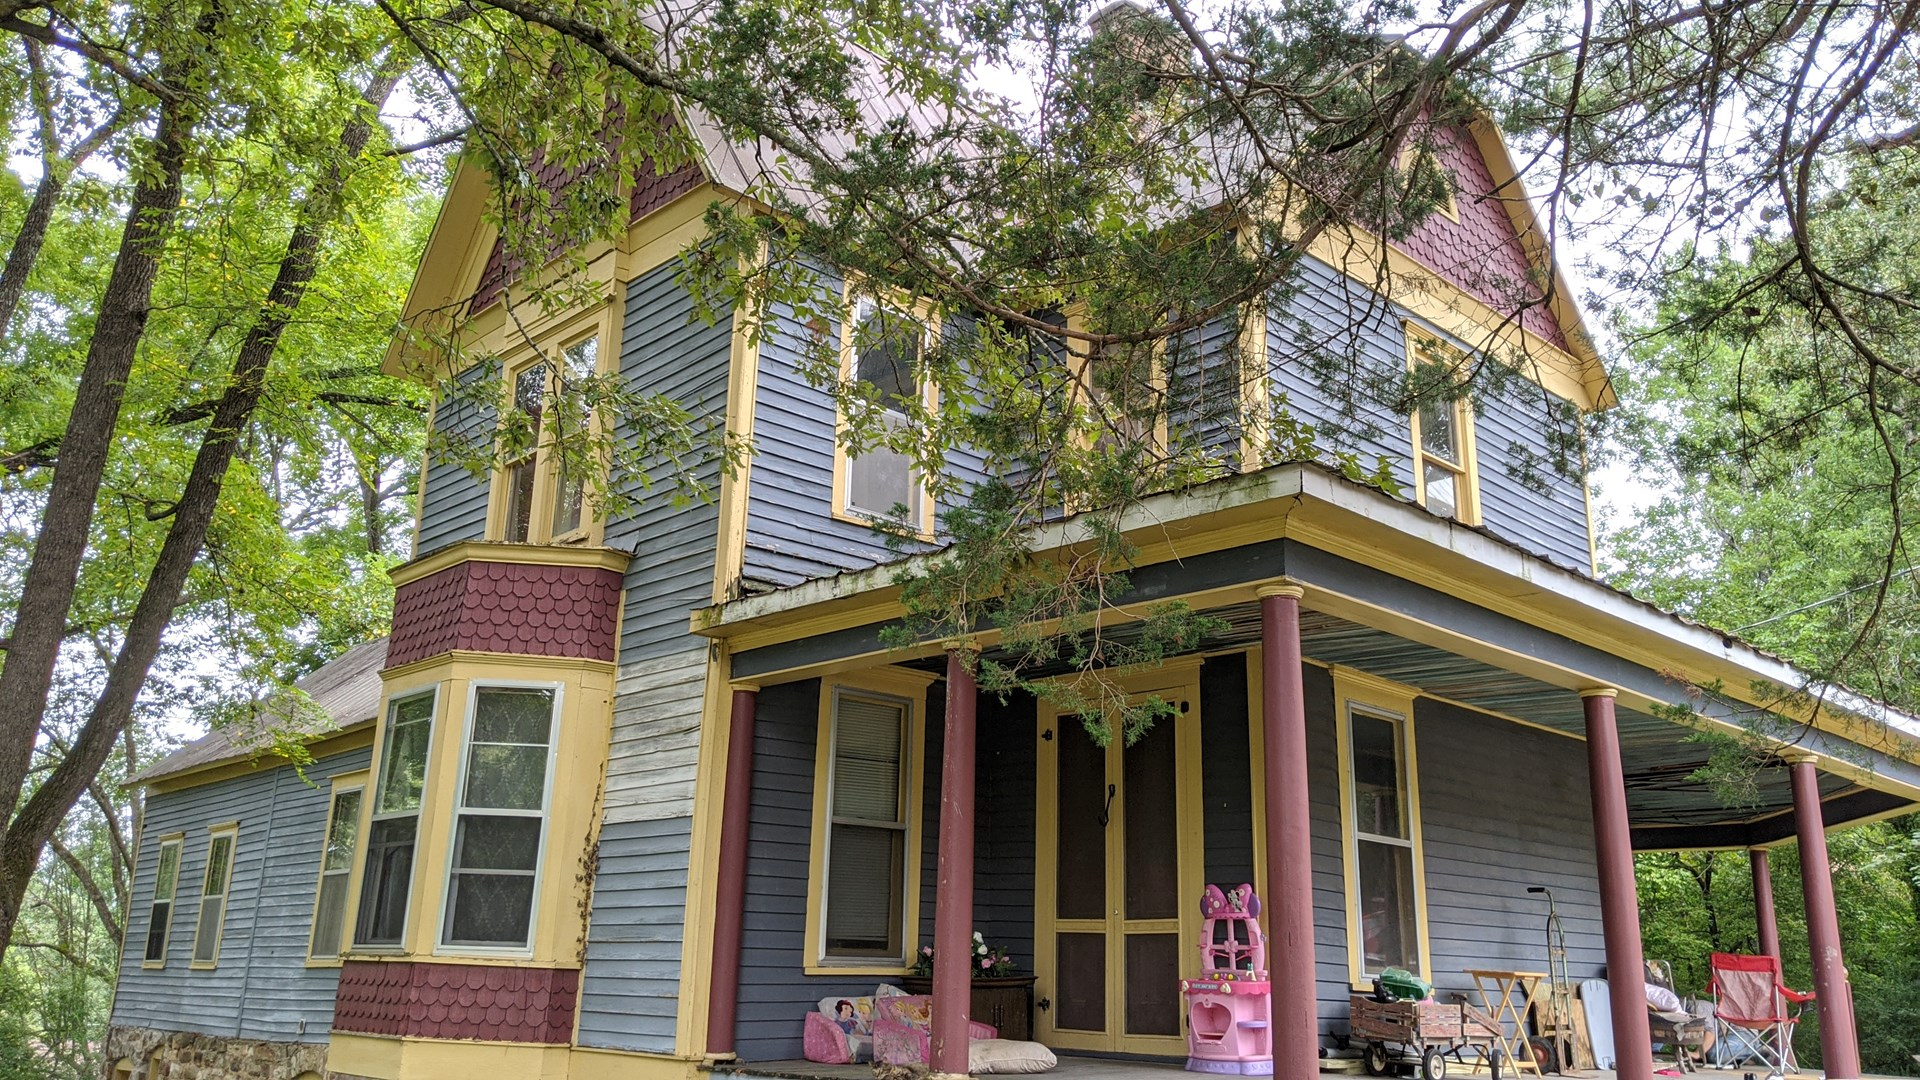 HISTORIC HOME For Sale In The Ozarks